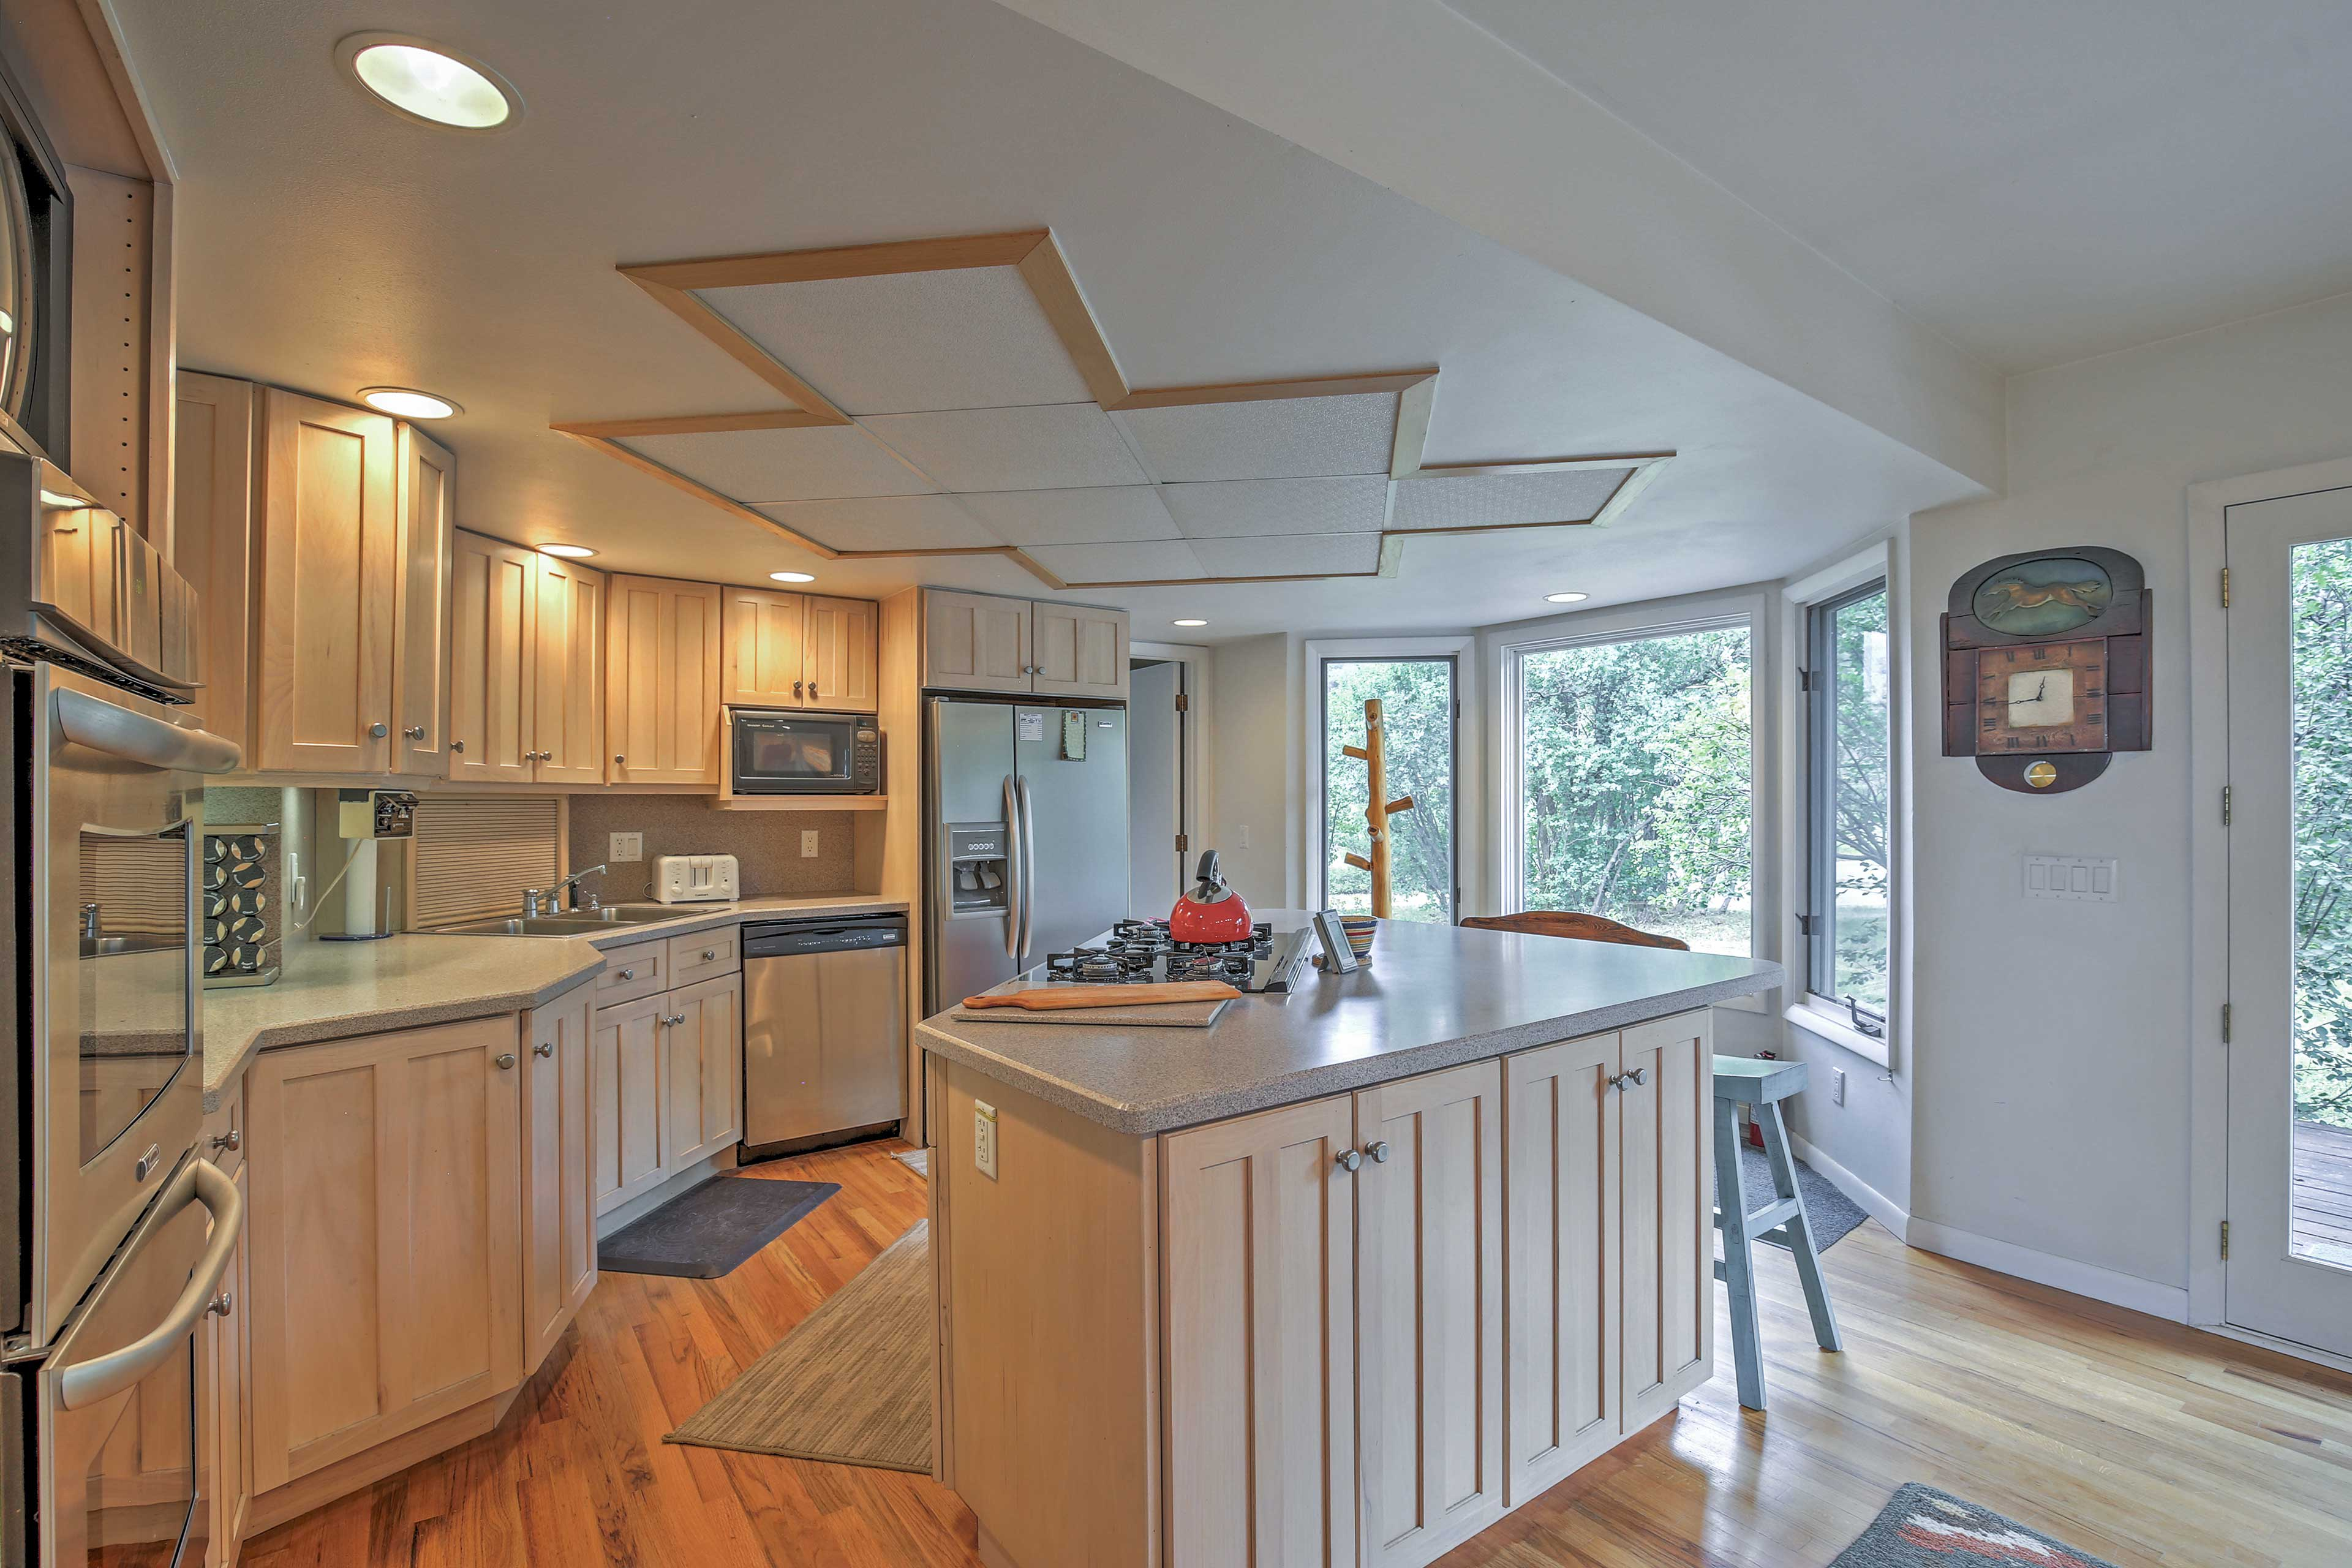 The kitchen offers ample space with a large kitchen island.